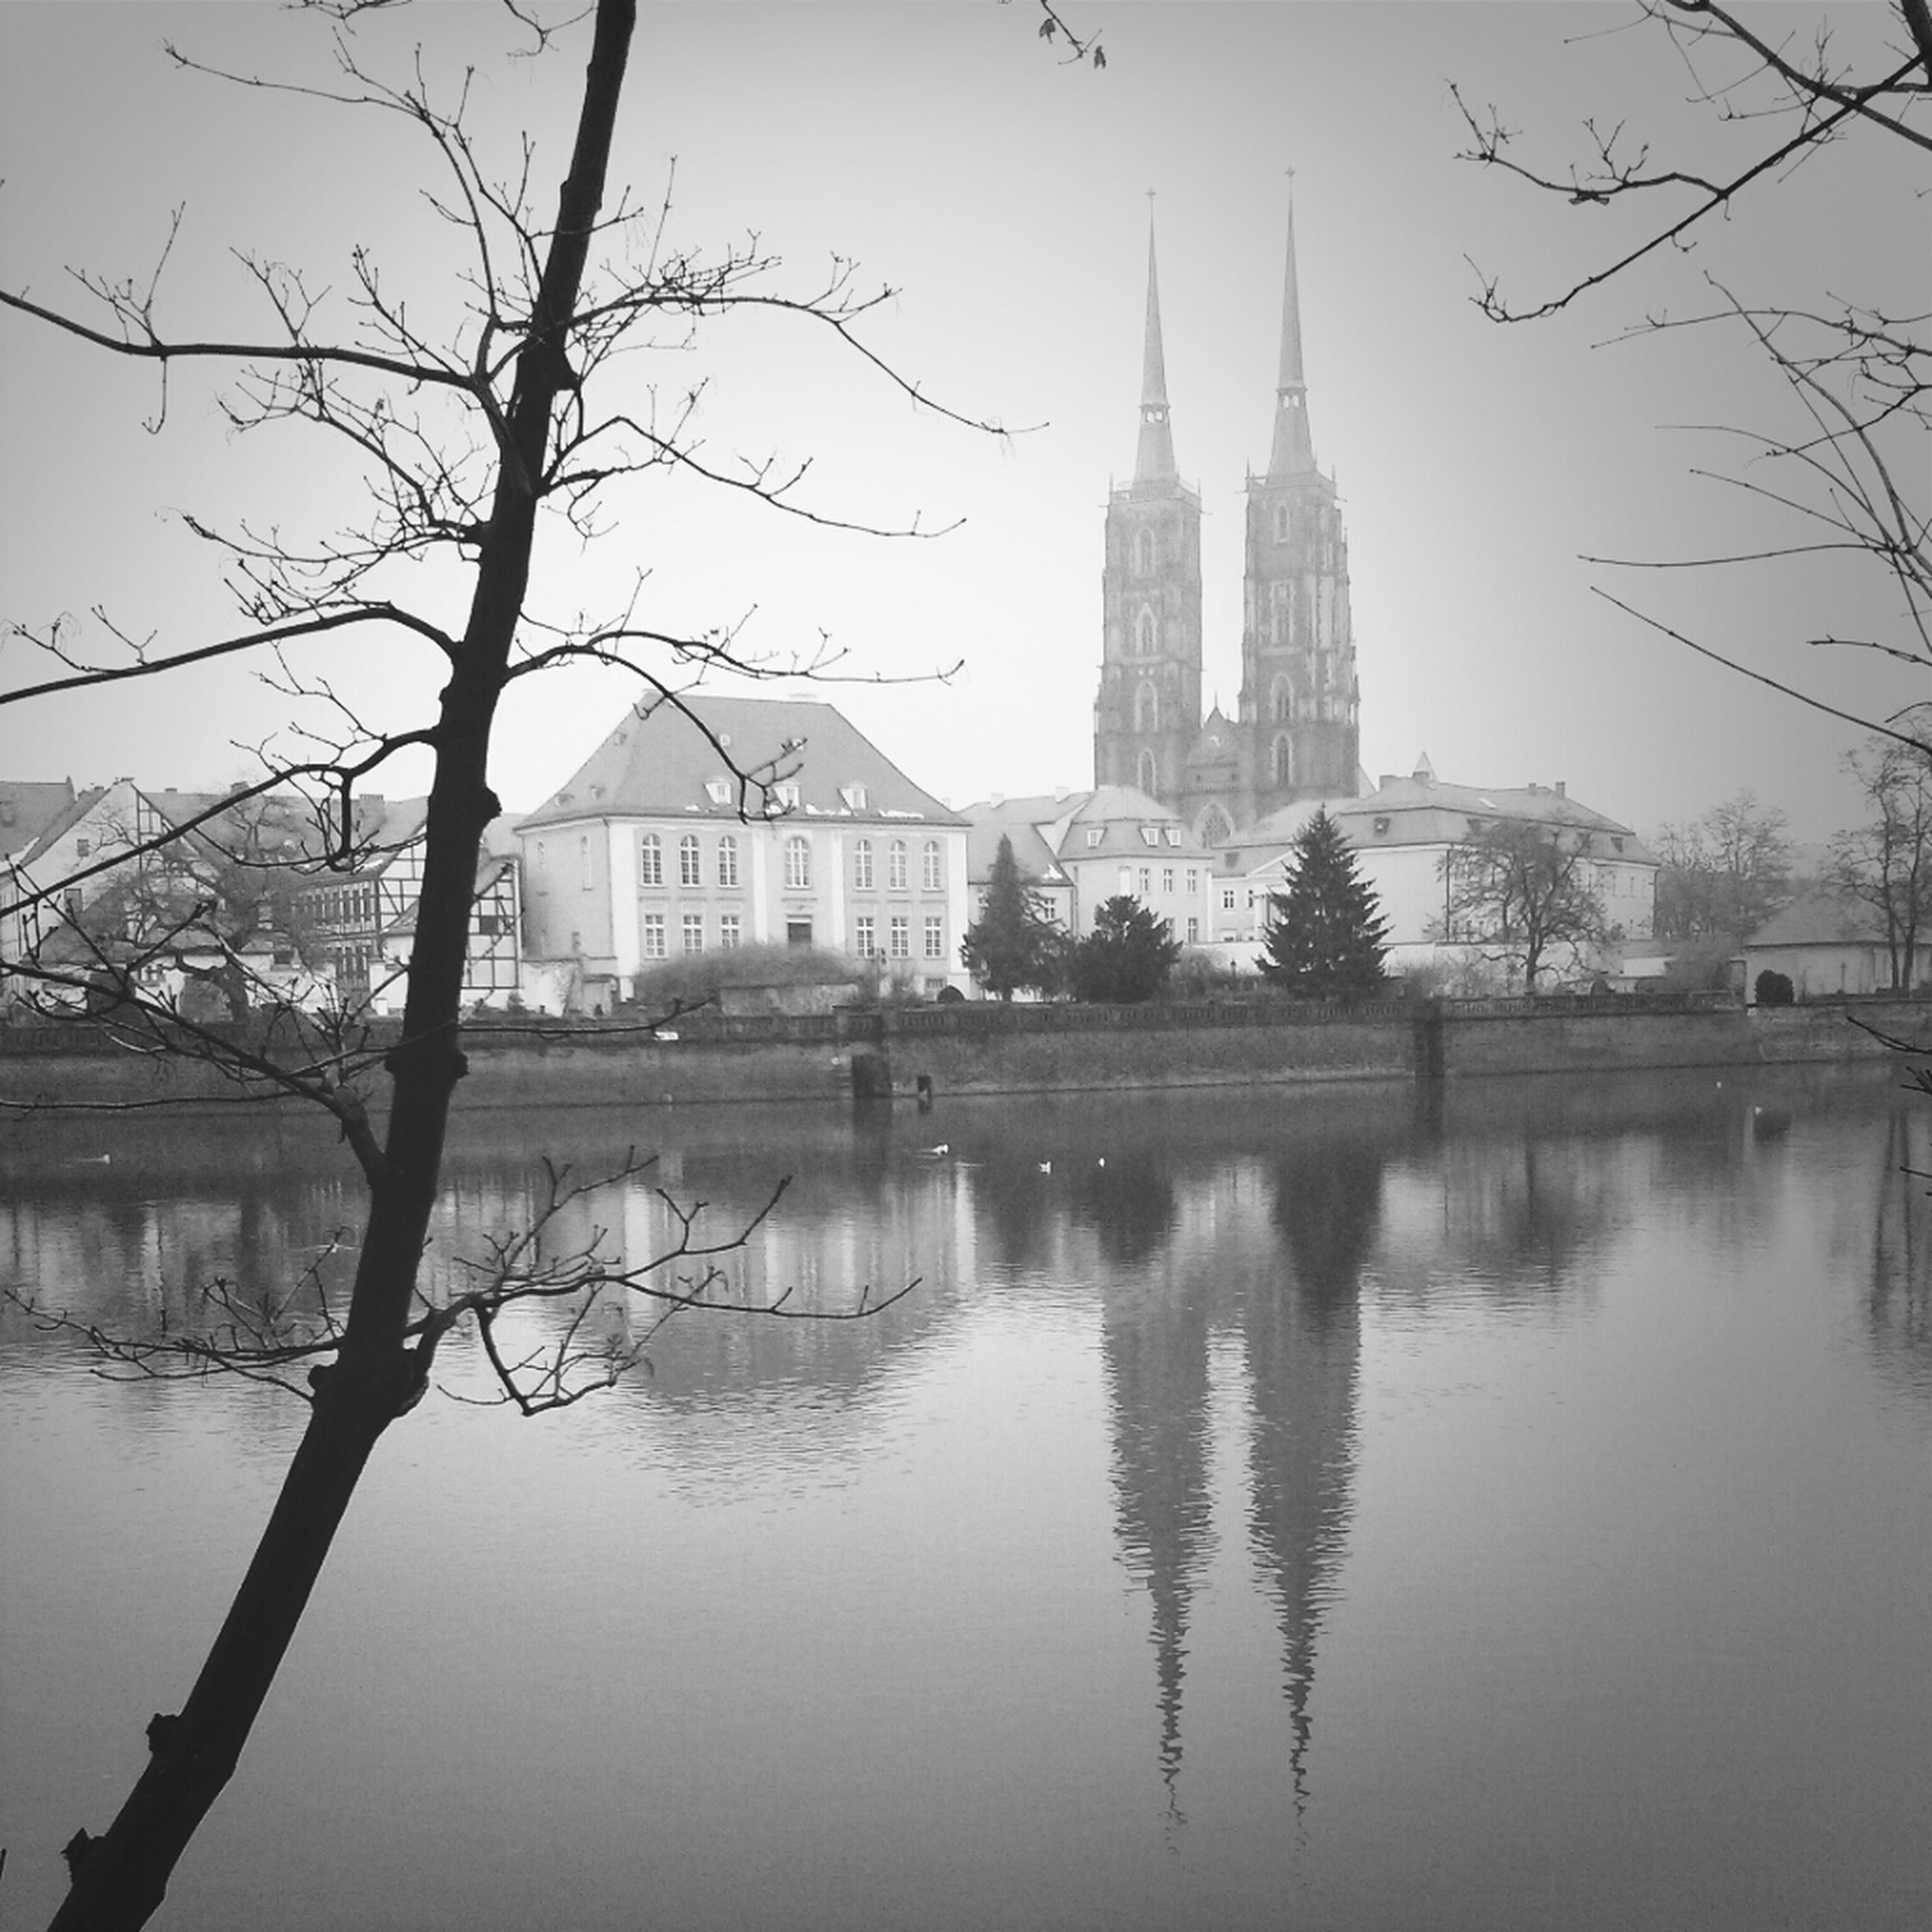 architecture, built structure, building exterior, water, reflection, city, bare tree, river, waterfront, famous place, tree, travel destinations, tower, dome, clear sky, place of worship, international landmark, church, religion, spirituality